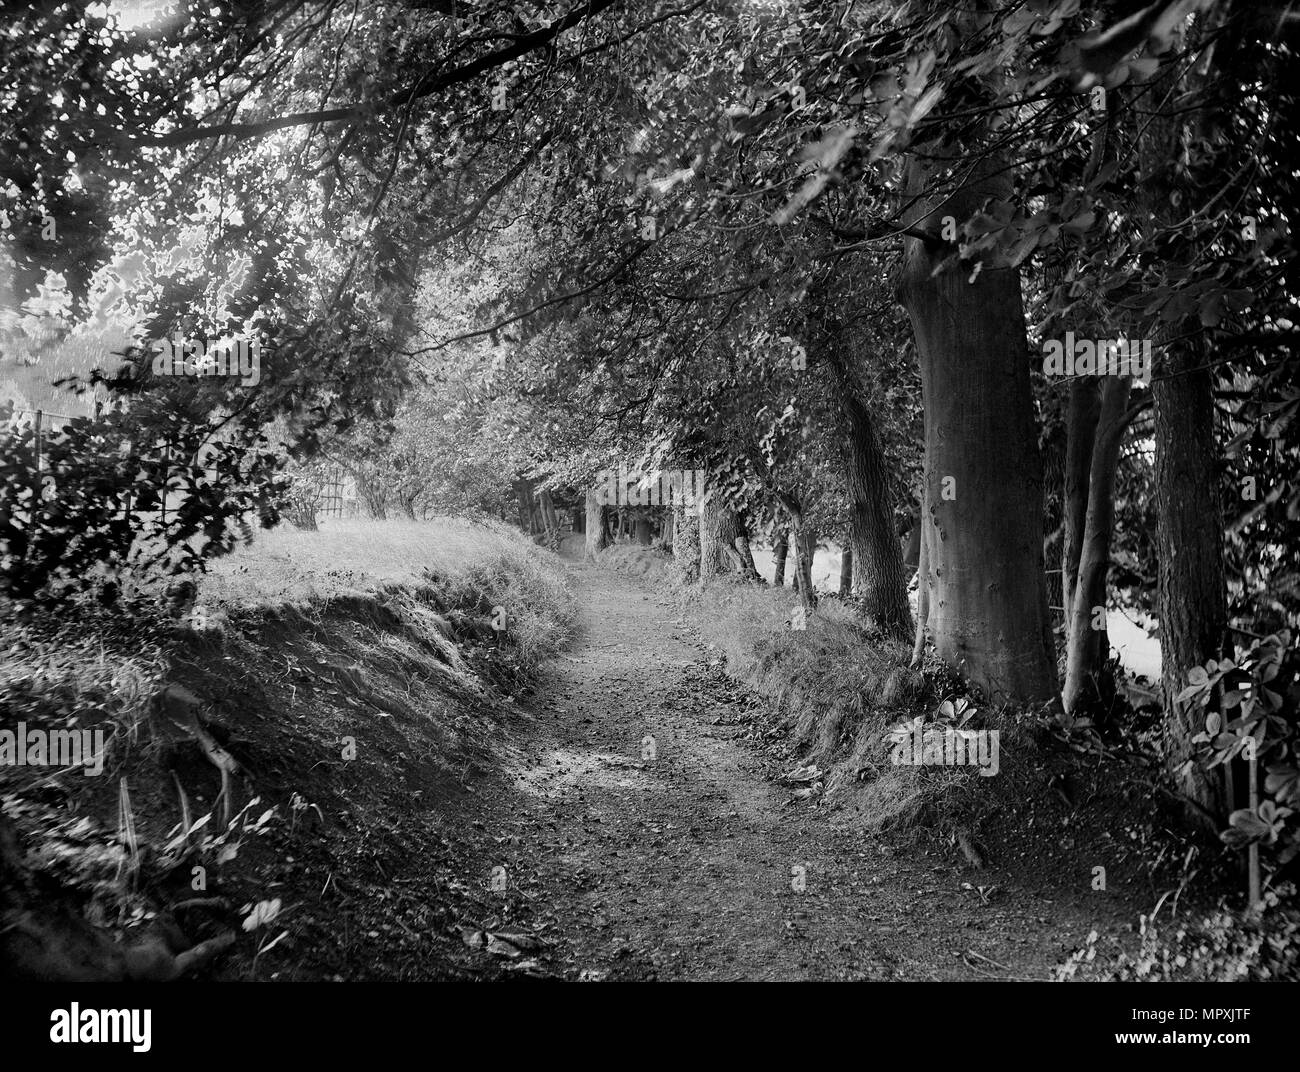 Tree-lined path in the gardens of West Ilsley House, Berkshire, c1860-c1922. Artist: Henry Taunt. Stock Photo